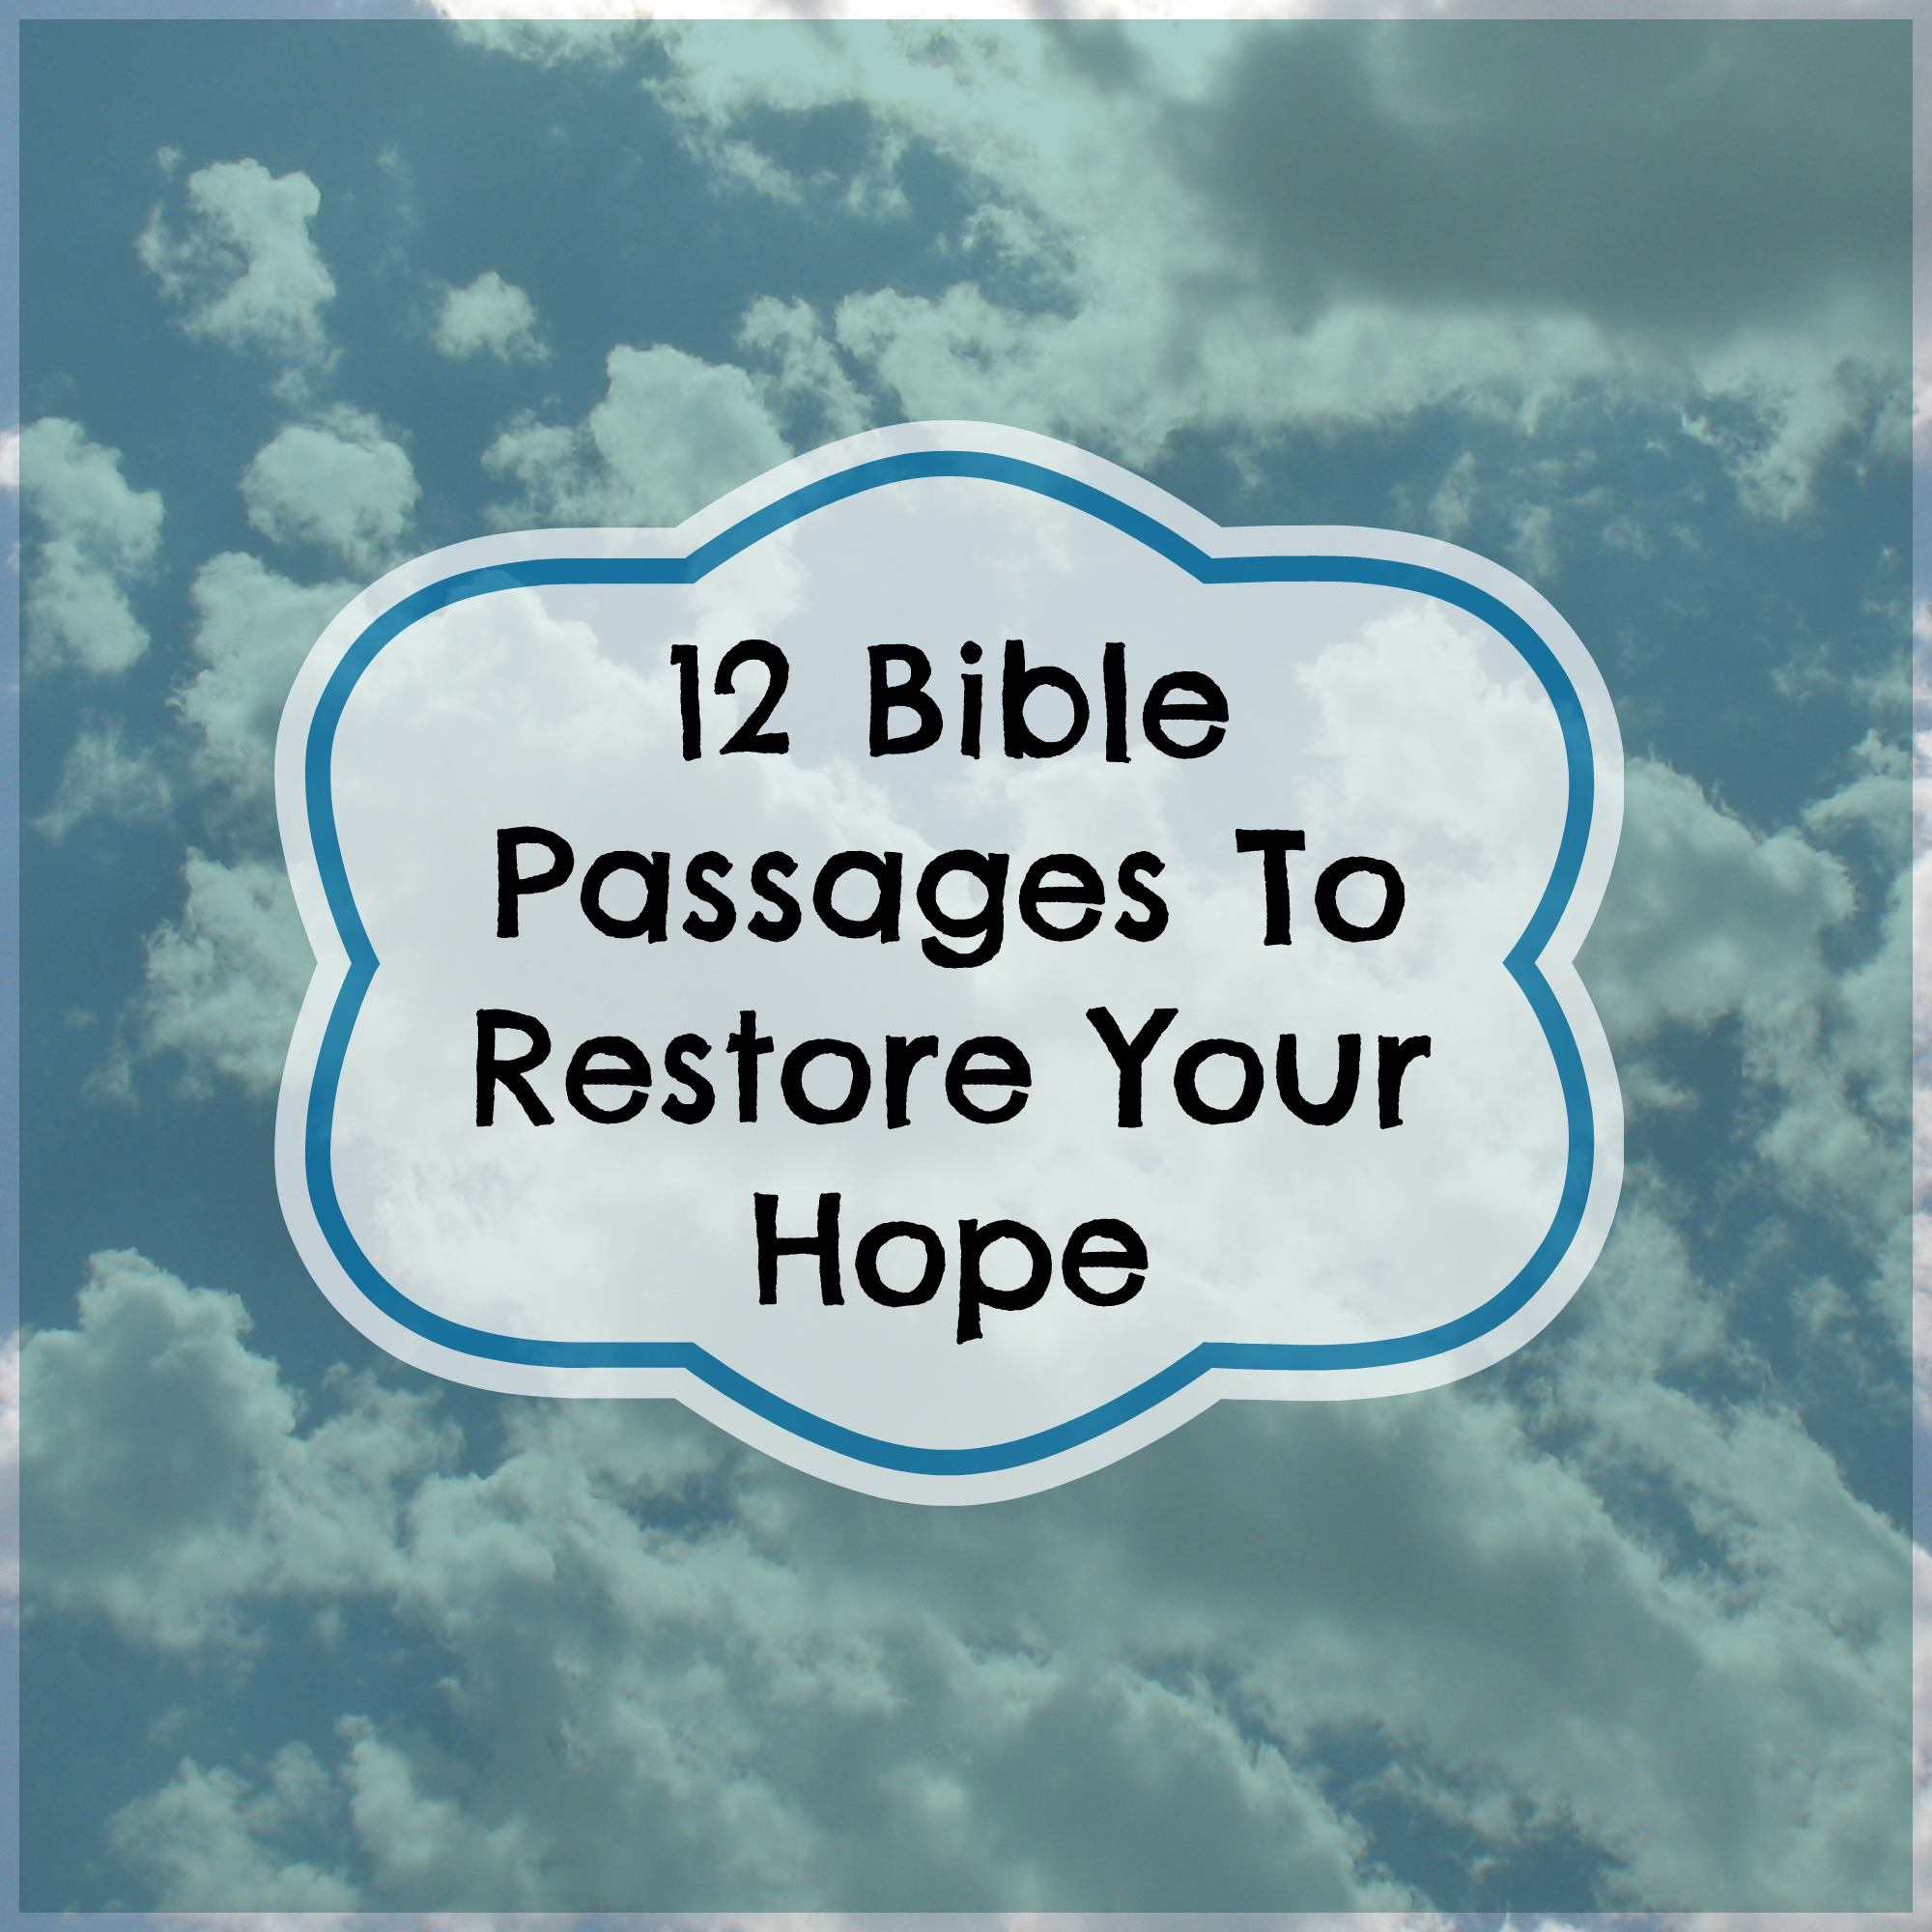 12 Bible Passages To Restore Your Hope